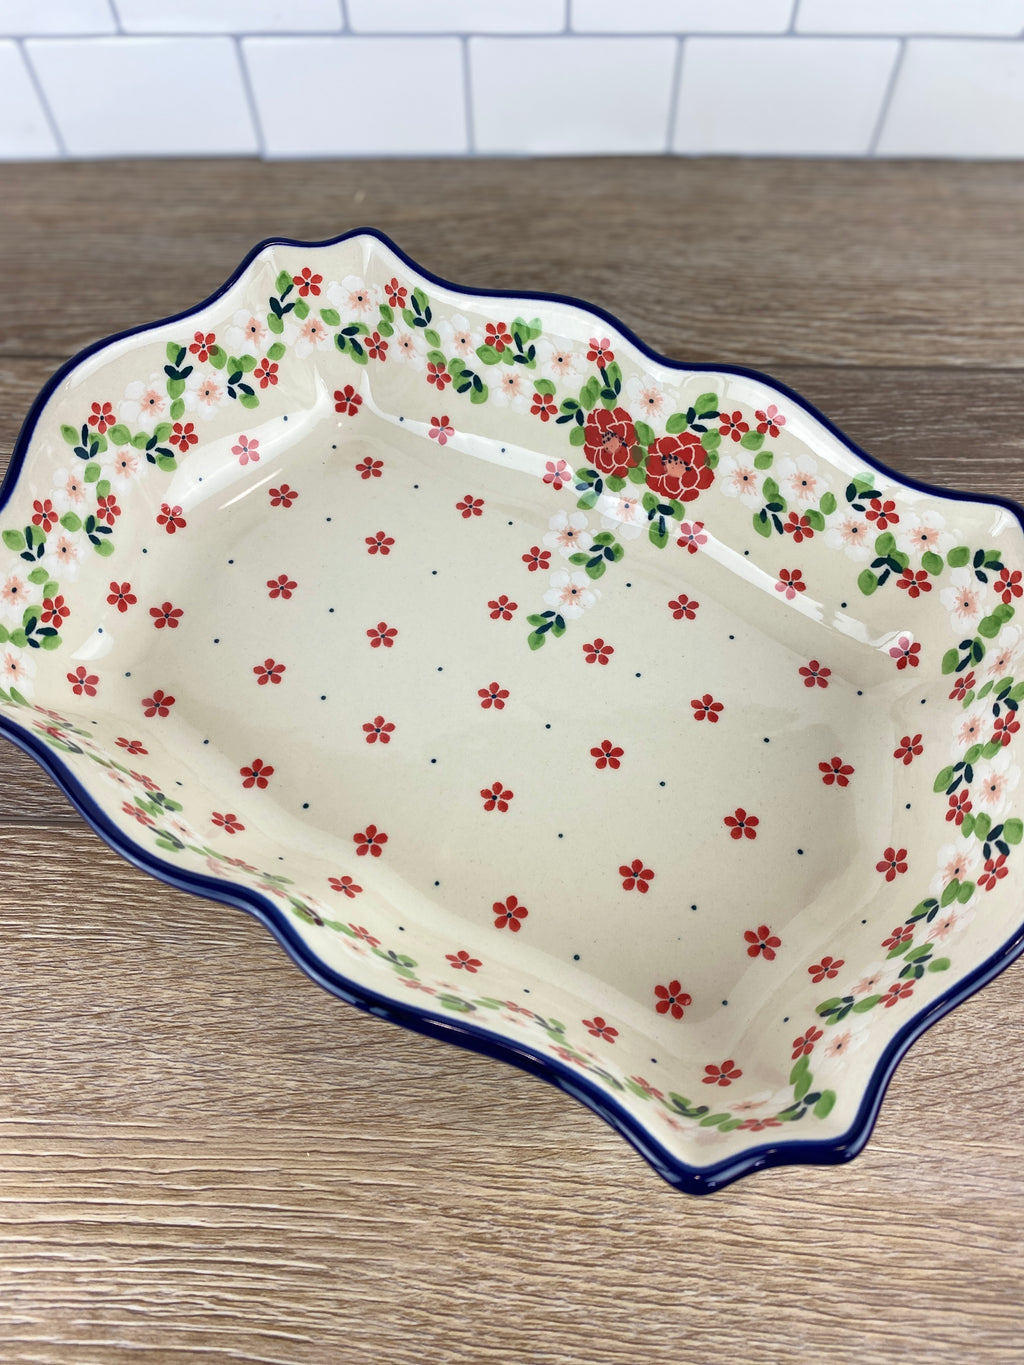 SALE Fancy Rectangular Baker / Bowl - Shape A51 - Pattern 2352